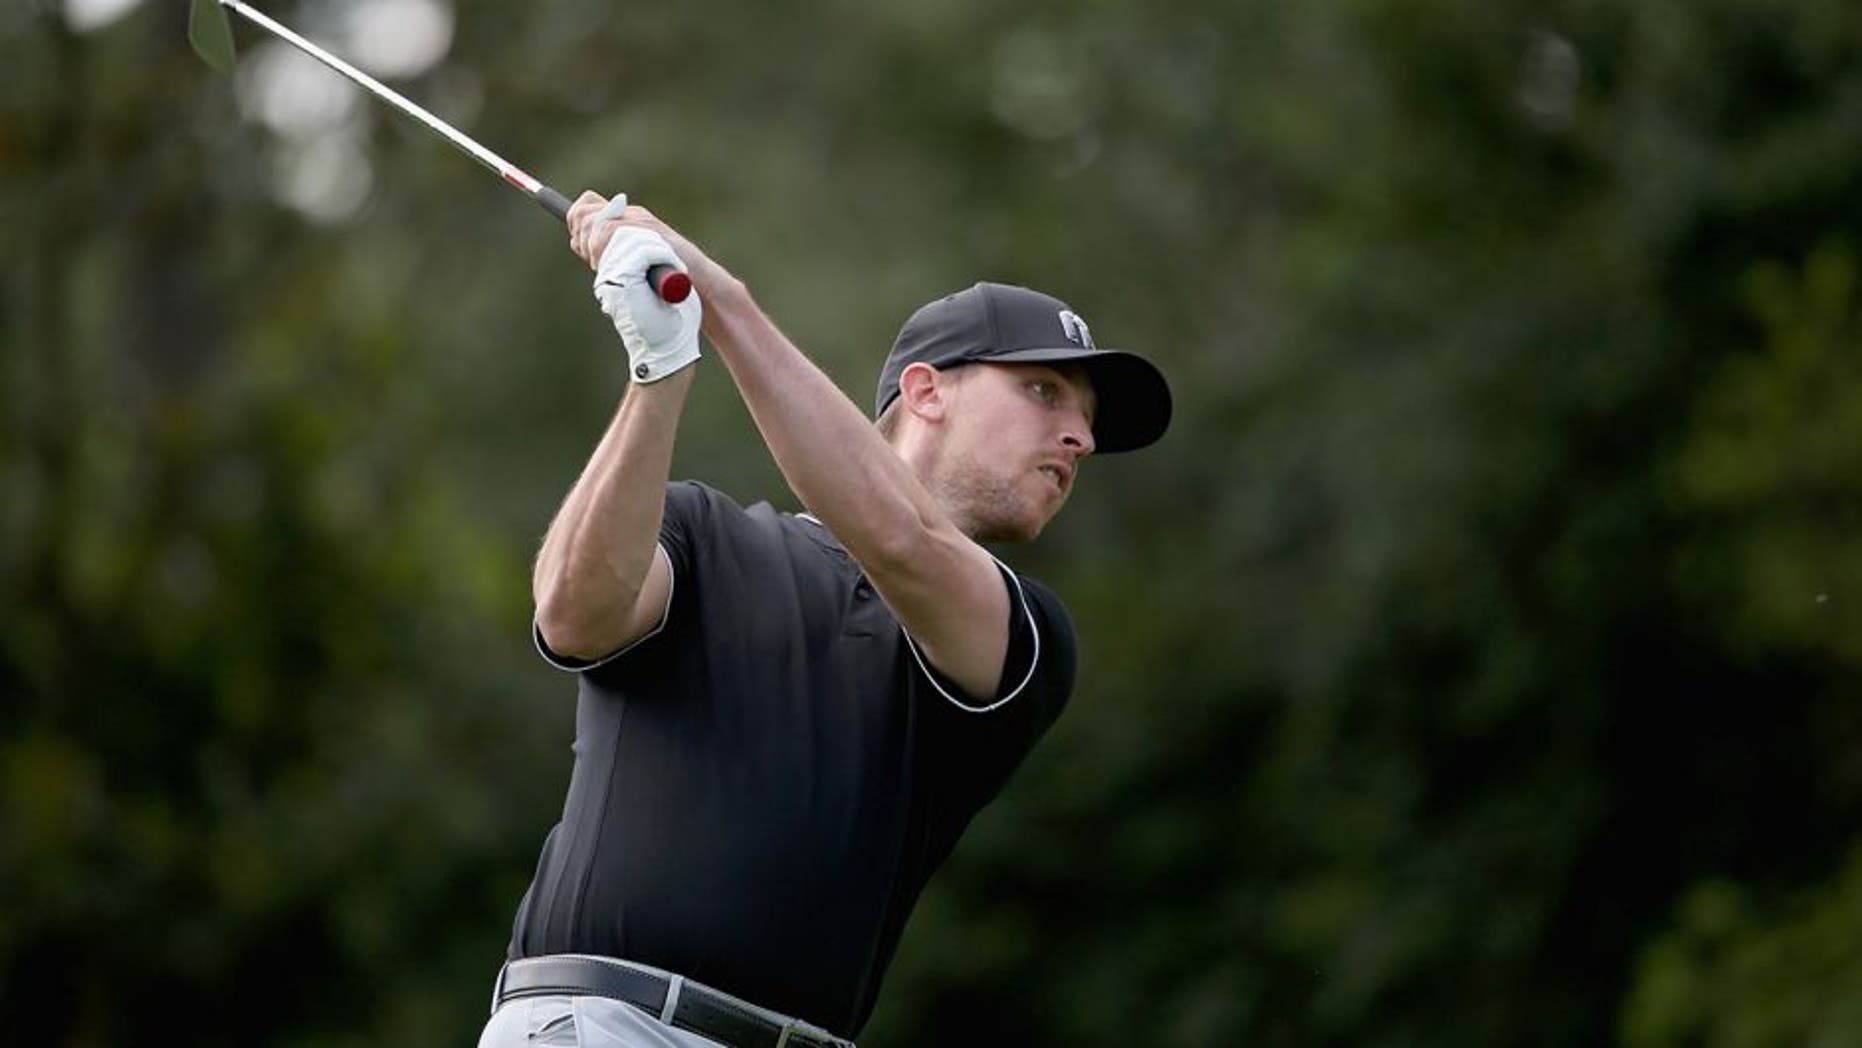 CHARLOTTE, NC - MAY 04: Nascar driver, Denny Hamlin plays in the pro-am ahead of the 2016 Wells Fargo Championship at Quail Hollow Club on May 11, 2016 in Charlotte, North Carolina. (Photo by Streeter Lecka/Getty Images)